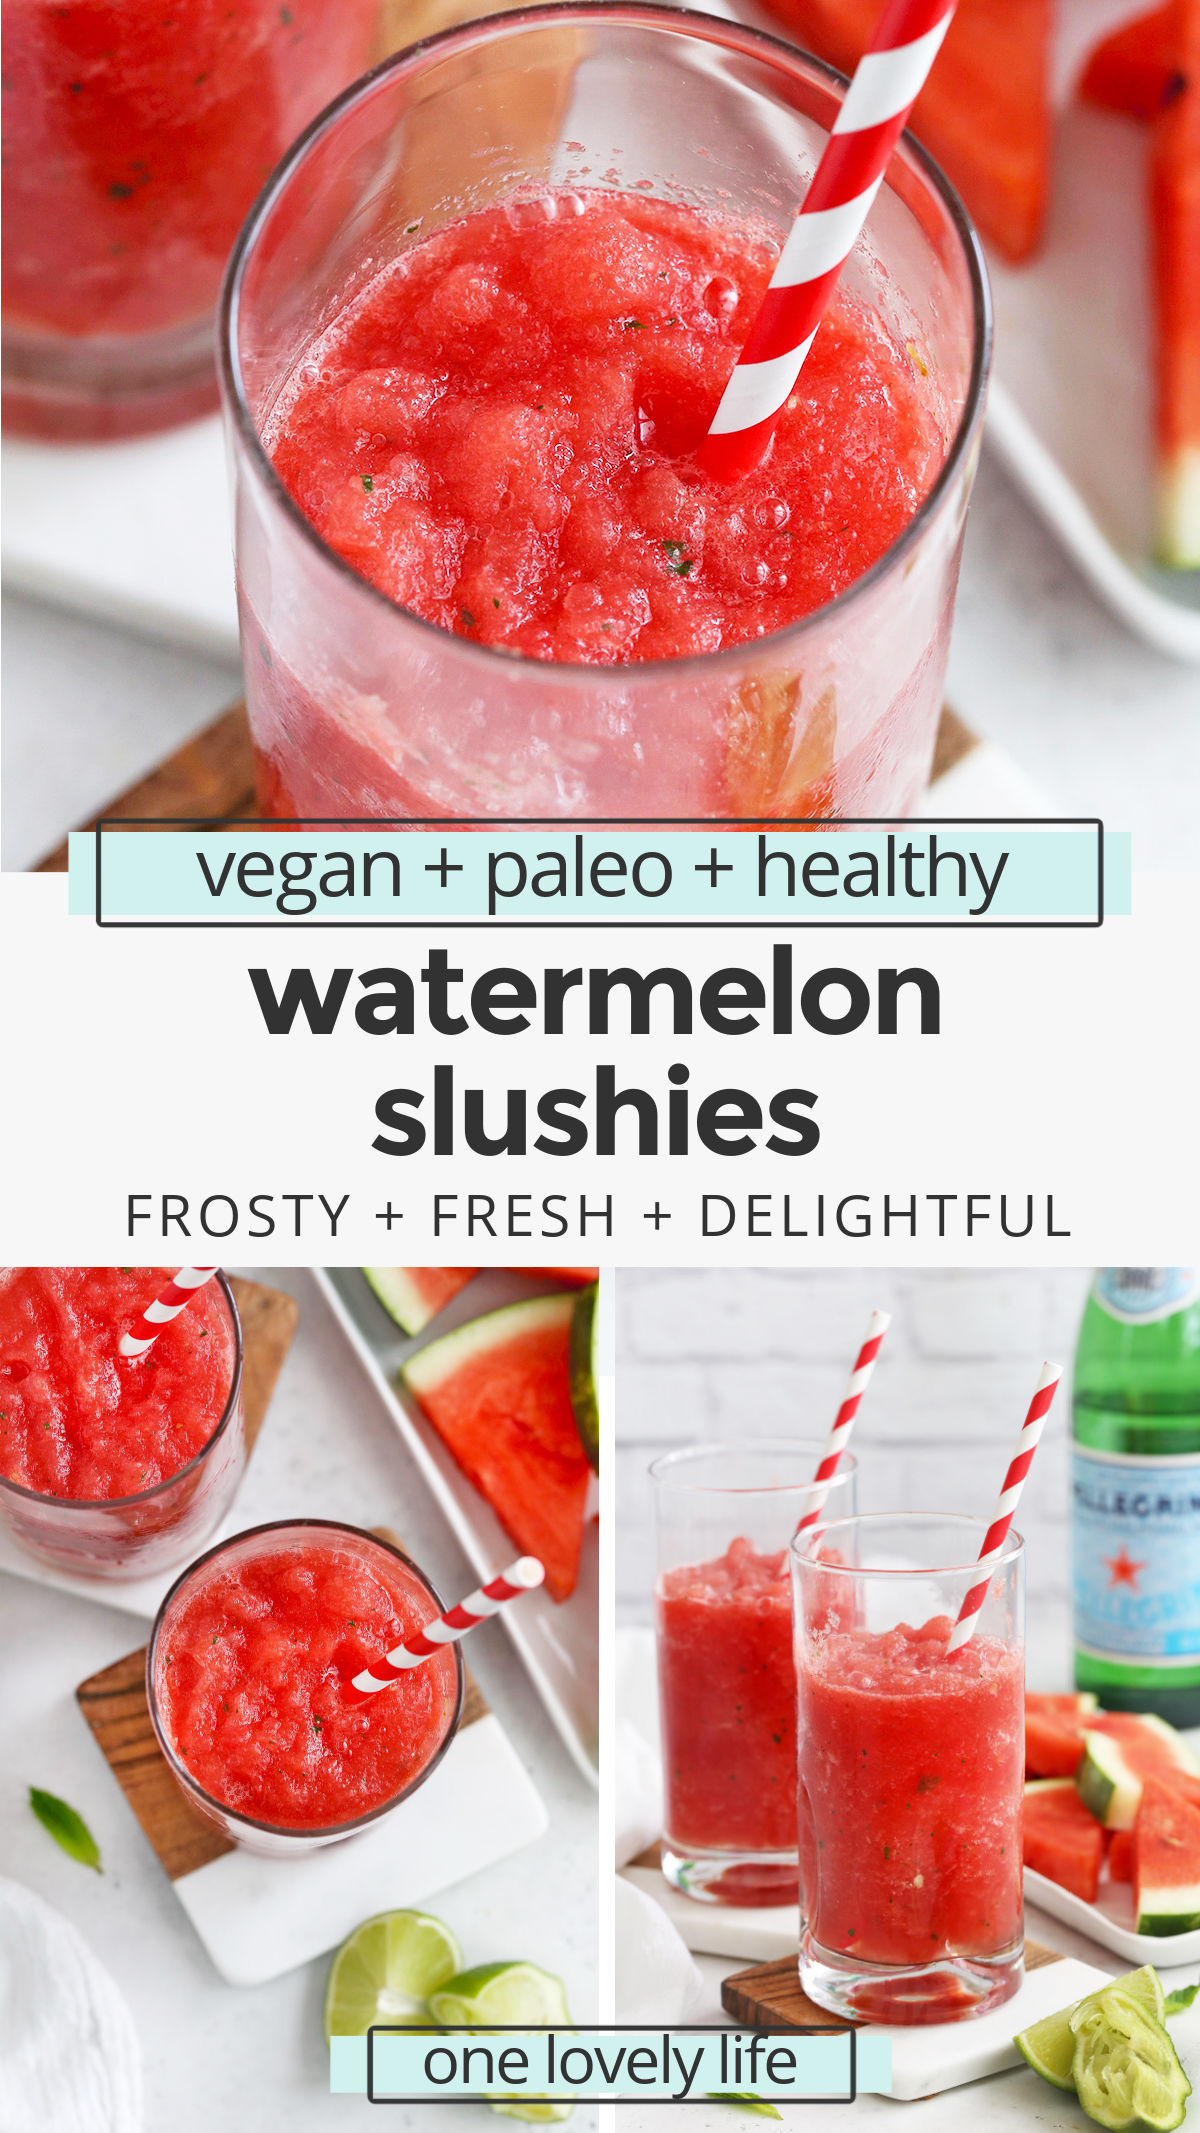 Watermelon Slushie - These frosty watermelon slushies are made from whole-food ingredients and taste AMAZING. So refreshing on a hot day! (Paleo, Vegan) // Watermelon slushy // watermelon icee // watermelon frosty // watermelon drink // watermelon cooler #watermelon #drink #paleo #vegan #healthy